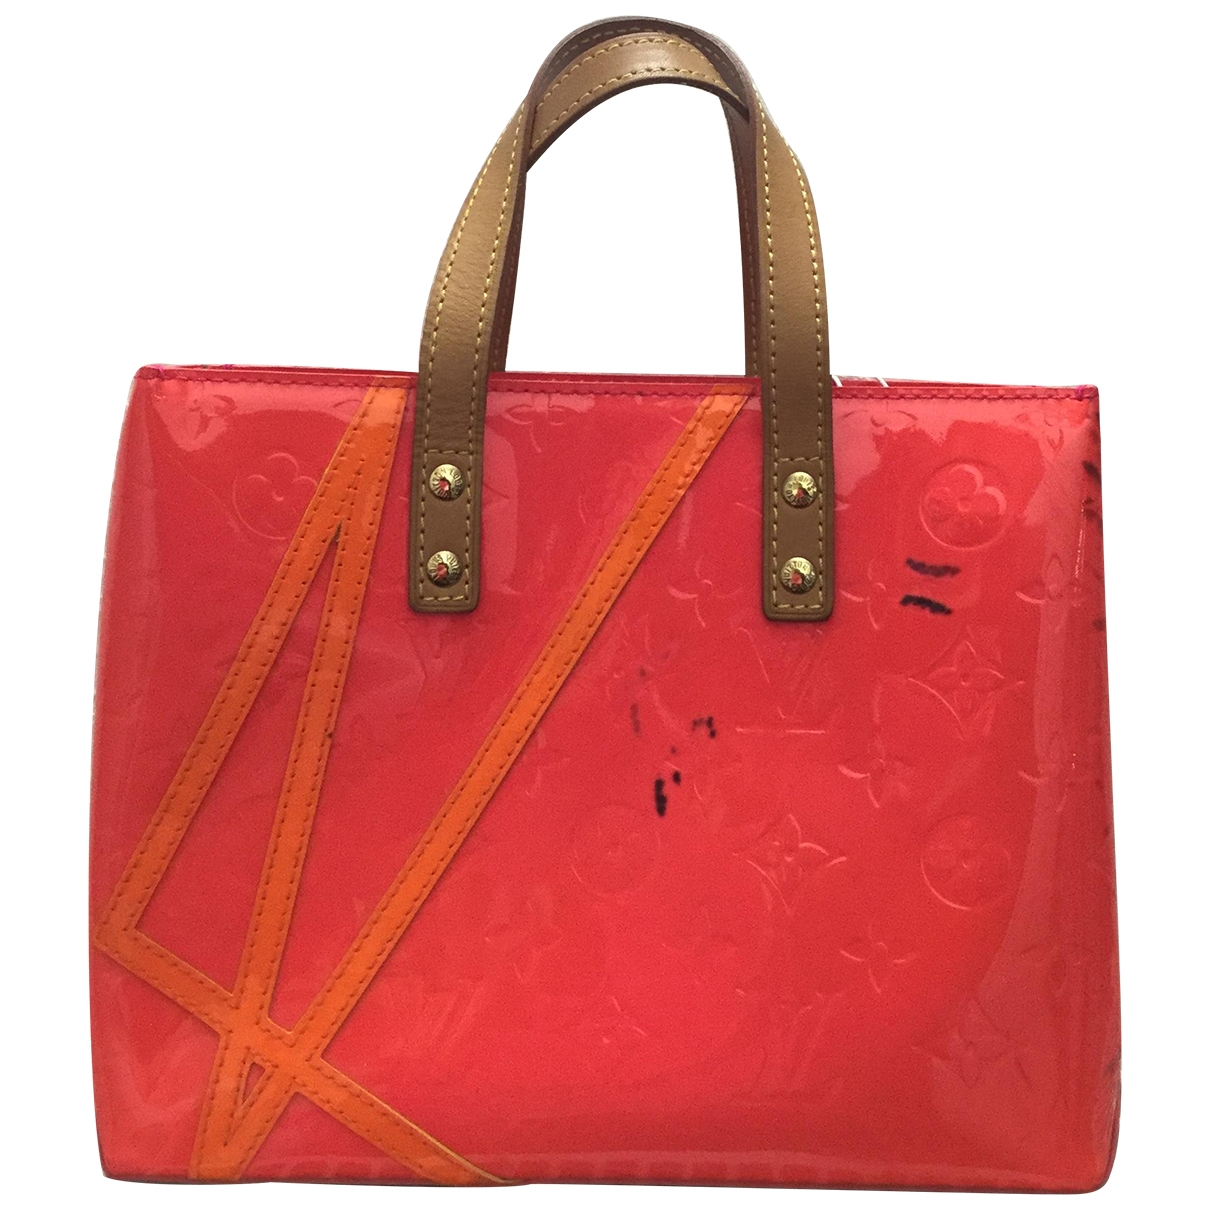 Louis Vuitton Houston Handtasche in  Rosa Lackleder